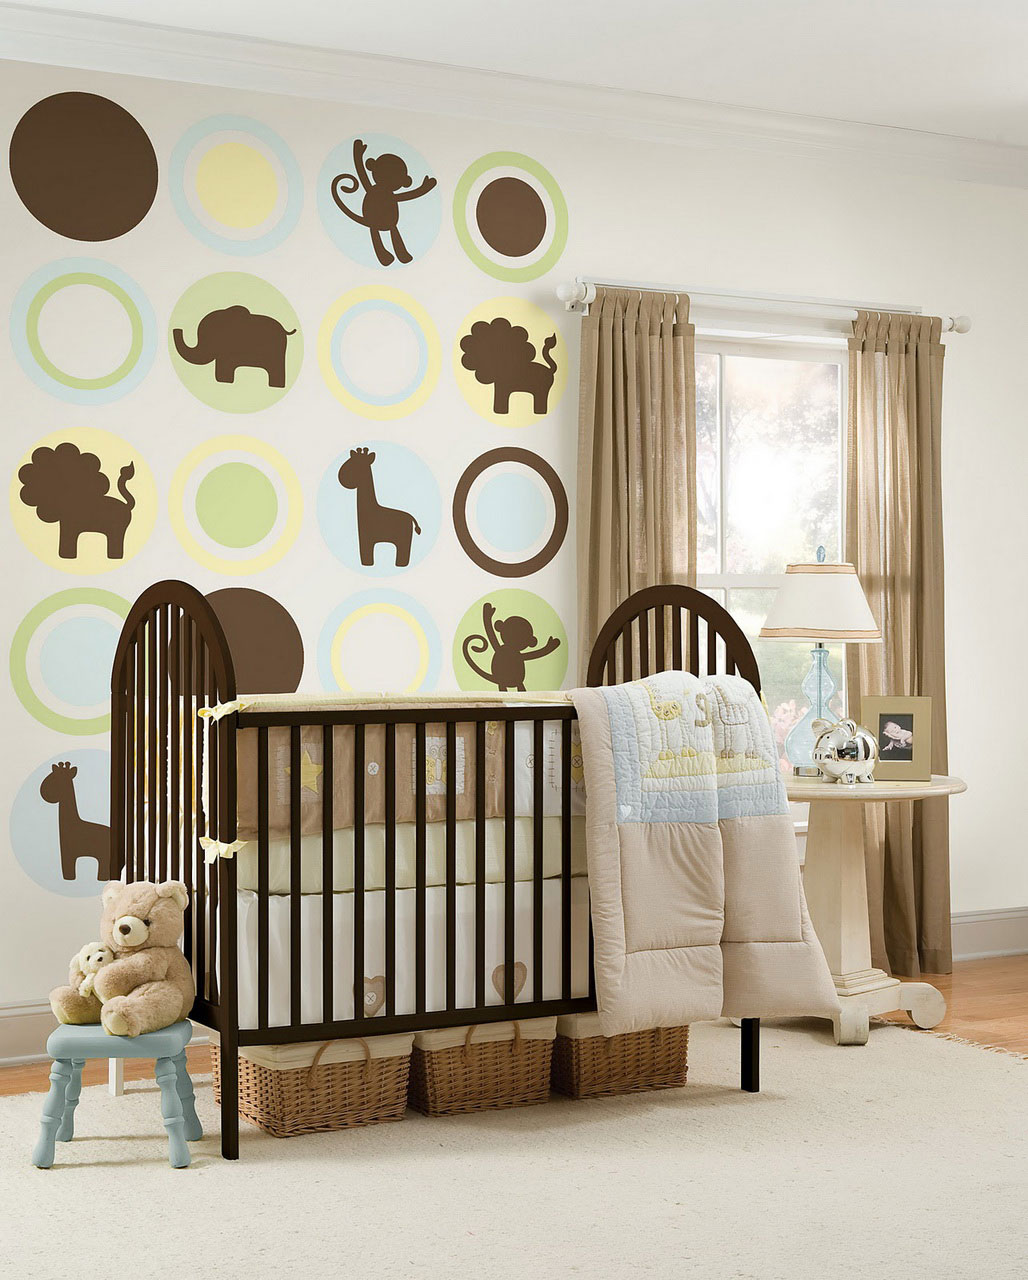 Dream nursery for your baby my decorative - Baby nursey ideas ...